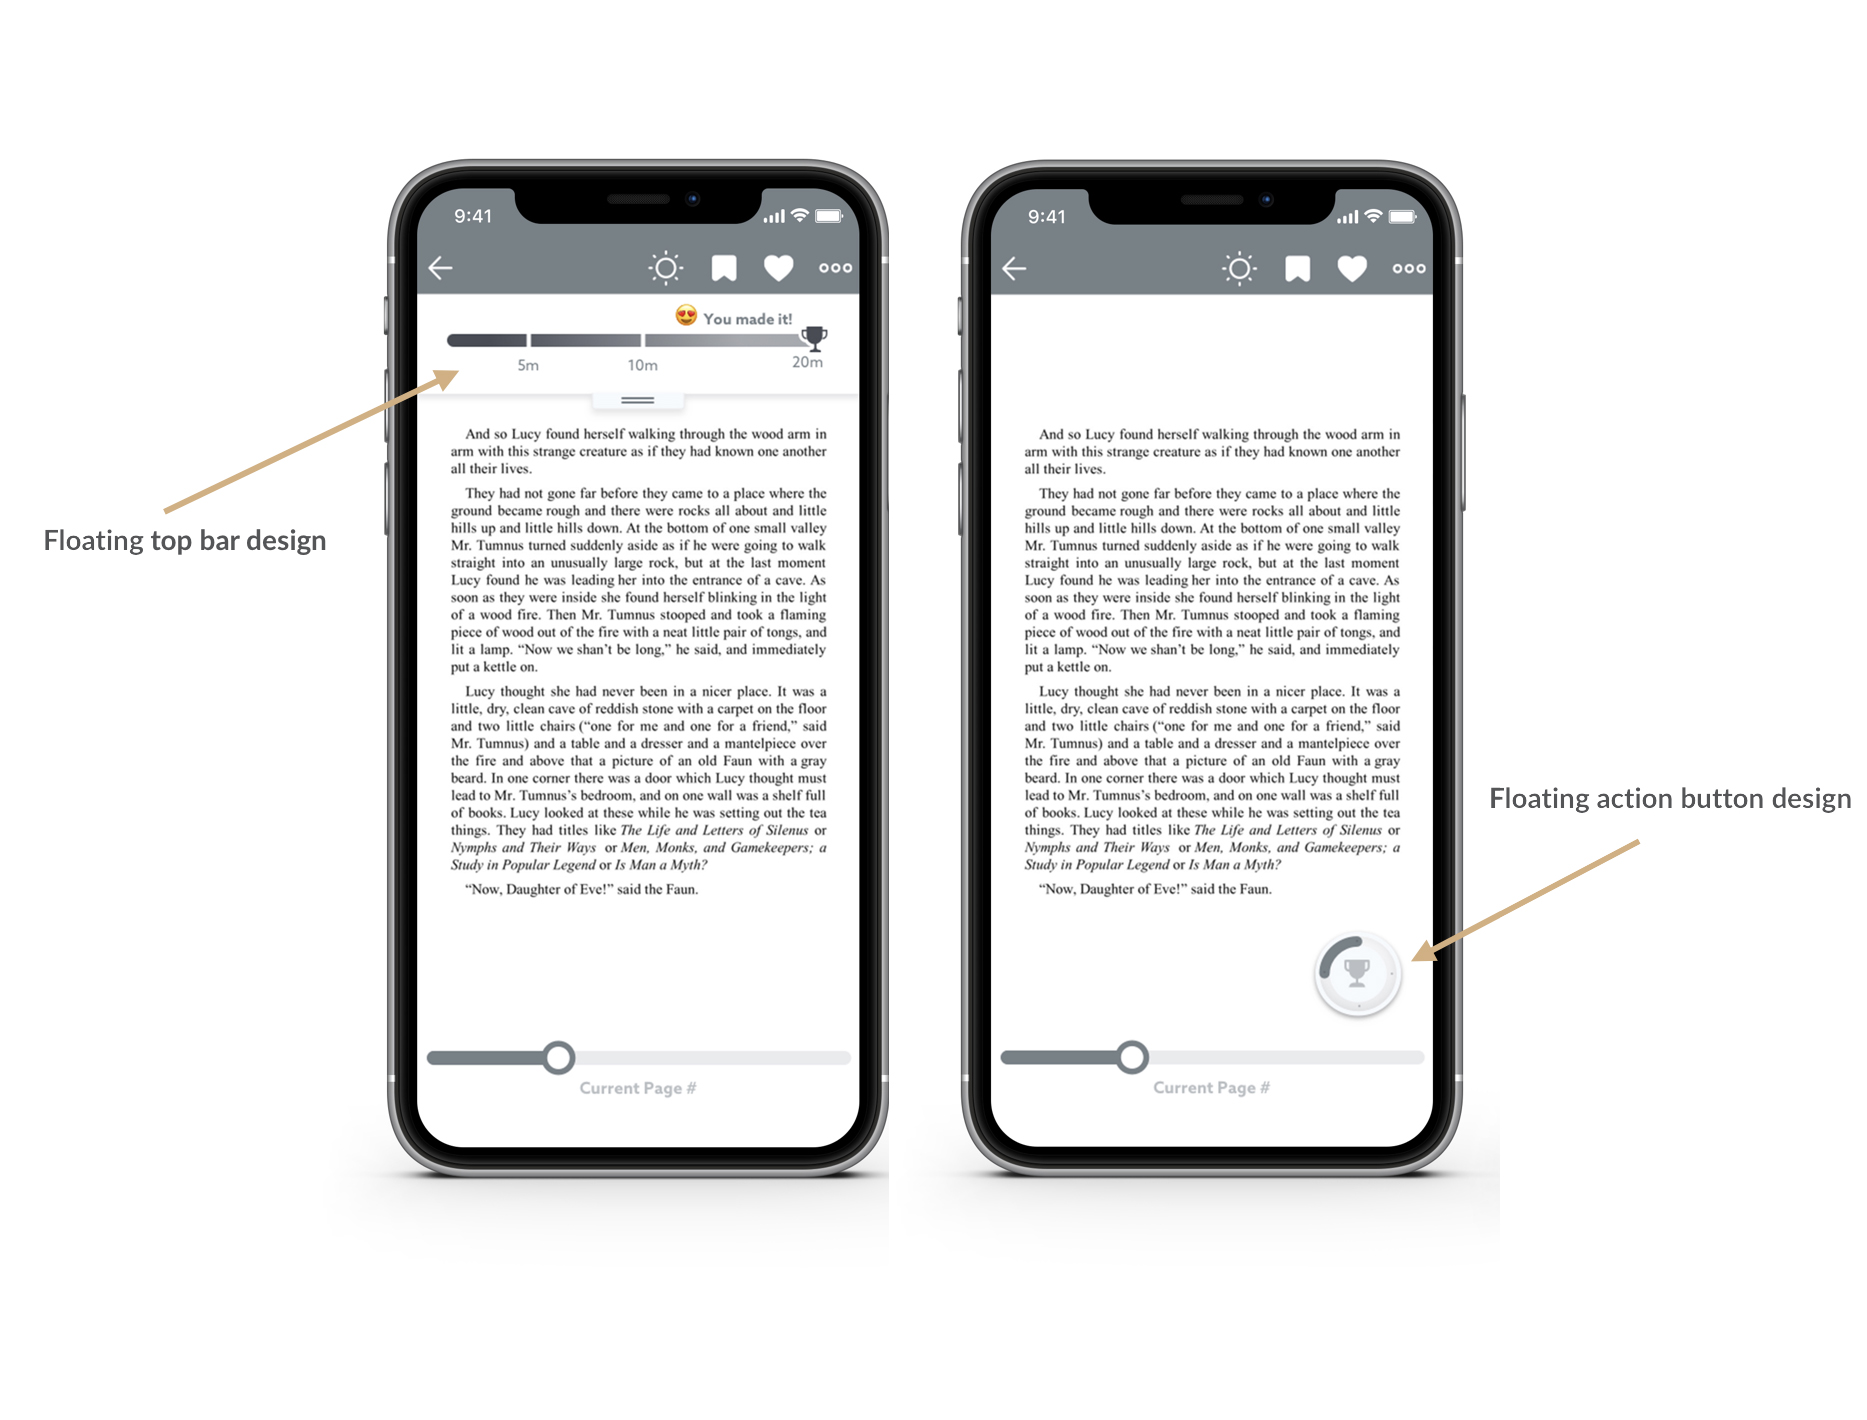 Wireframes for both the  Top Floating Bar  (Design 1) and the  Floating Action Button  (Design 2)